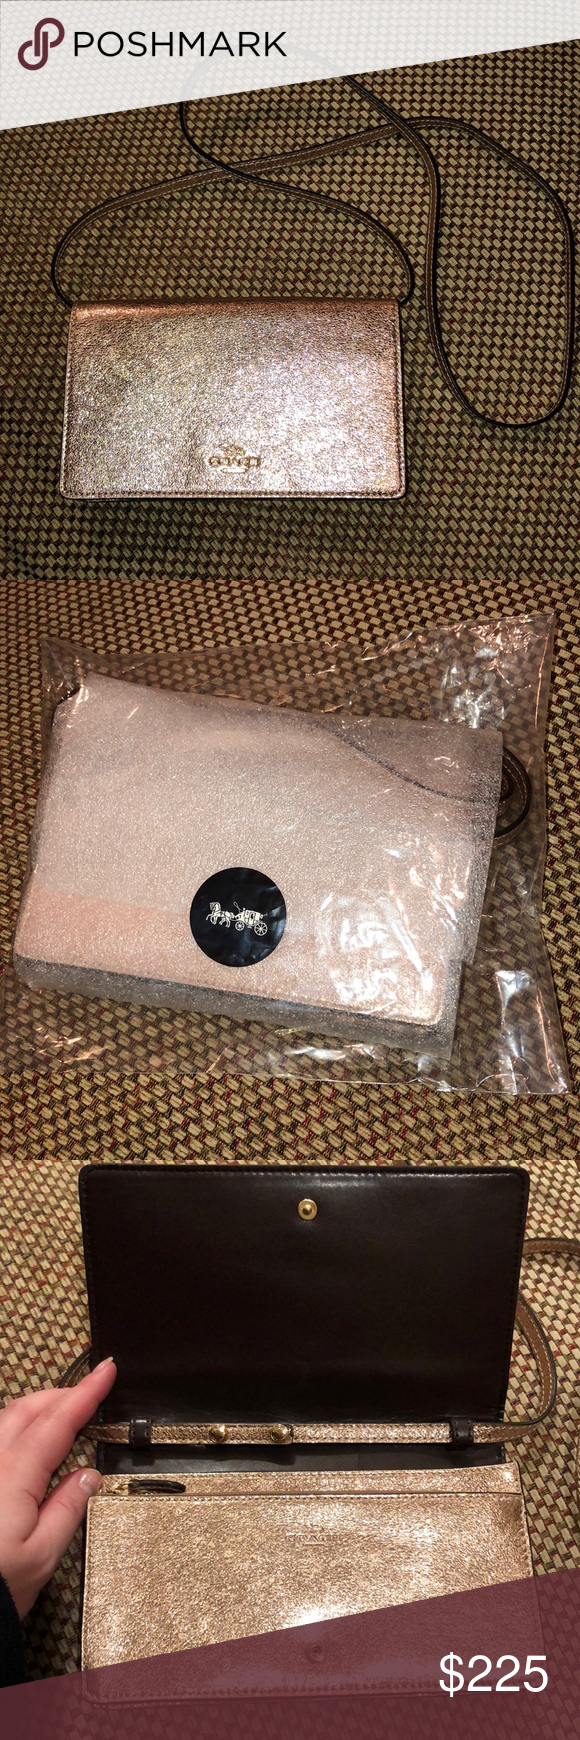 48368c856ed6 Brand New Coach Hayden Foldover Clutch-Rose Gold ✨Brand New in Package✨  Coach